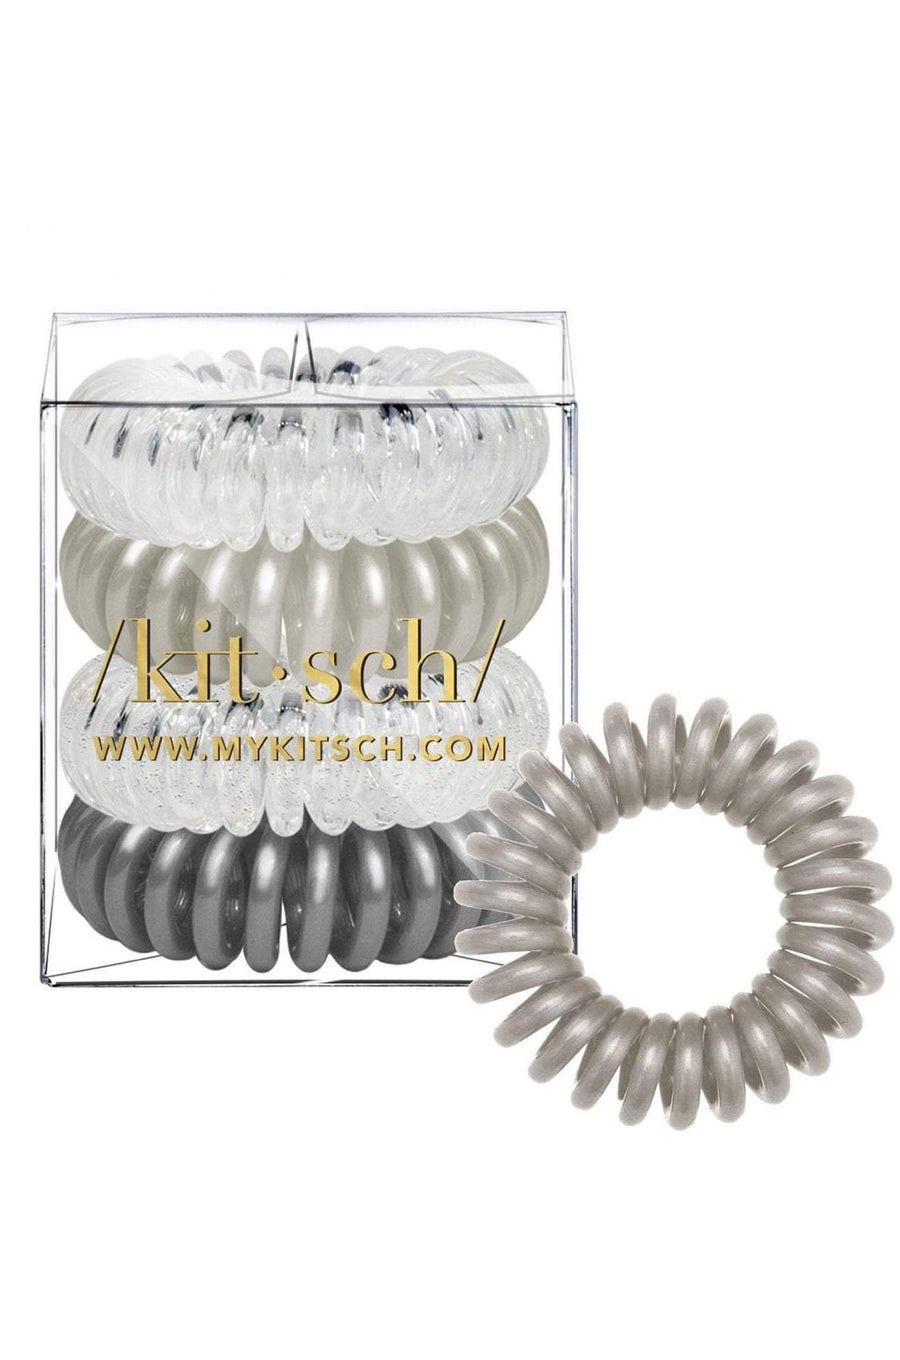 4 Pc Charcoal Hair Coils by Kitsch